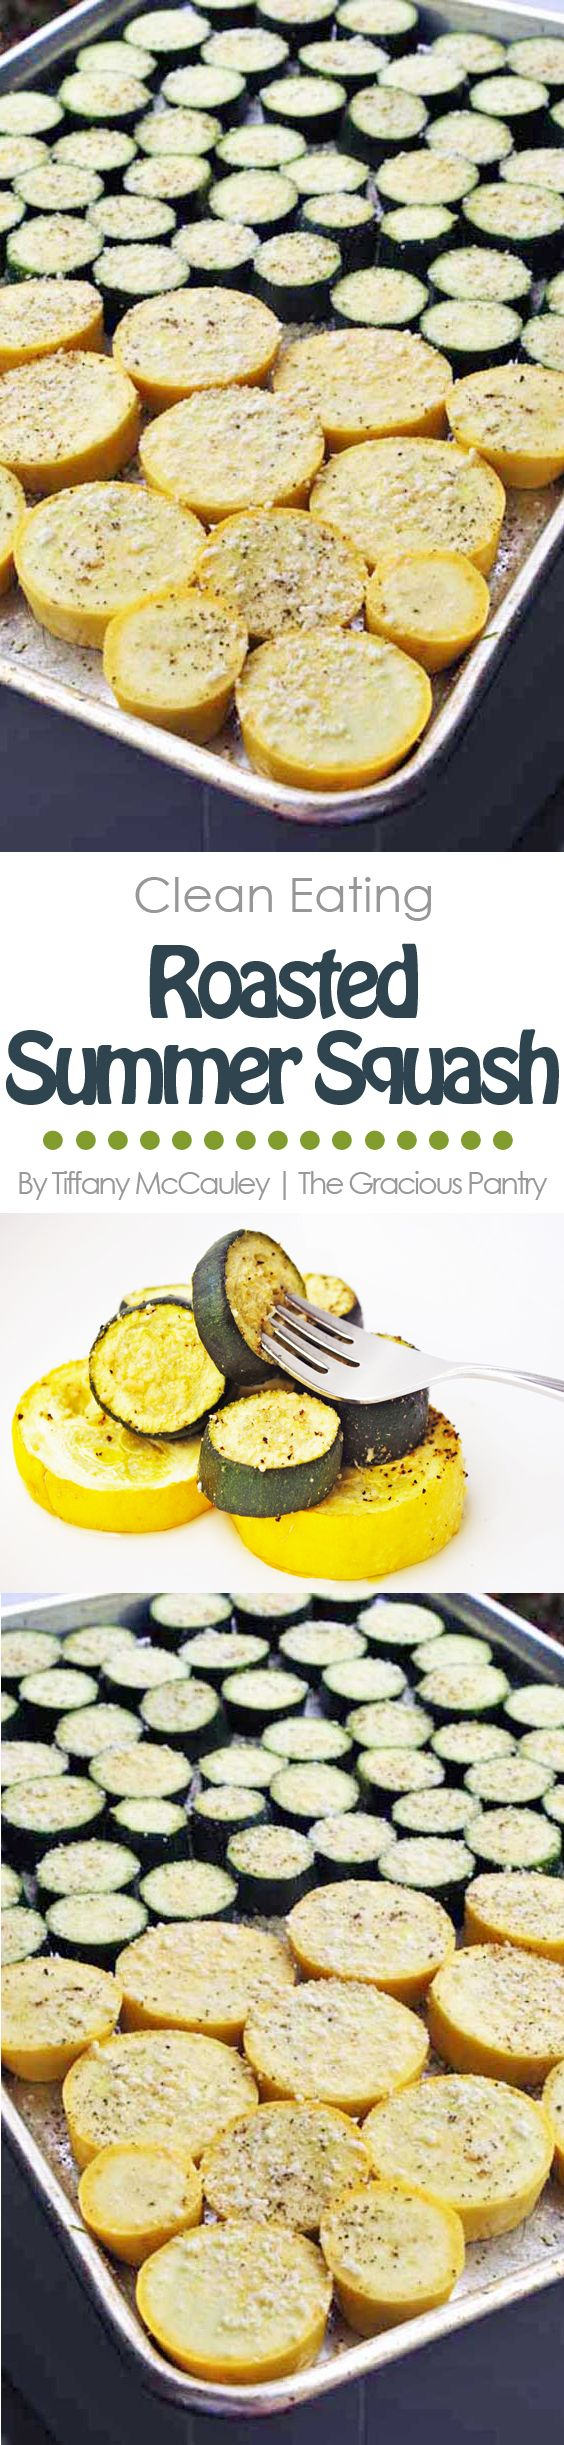 This Clean Eating Roasted Summer Squash Recipe is a delicious way to get more veggies in your day! (An